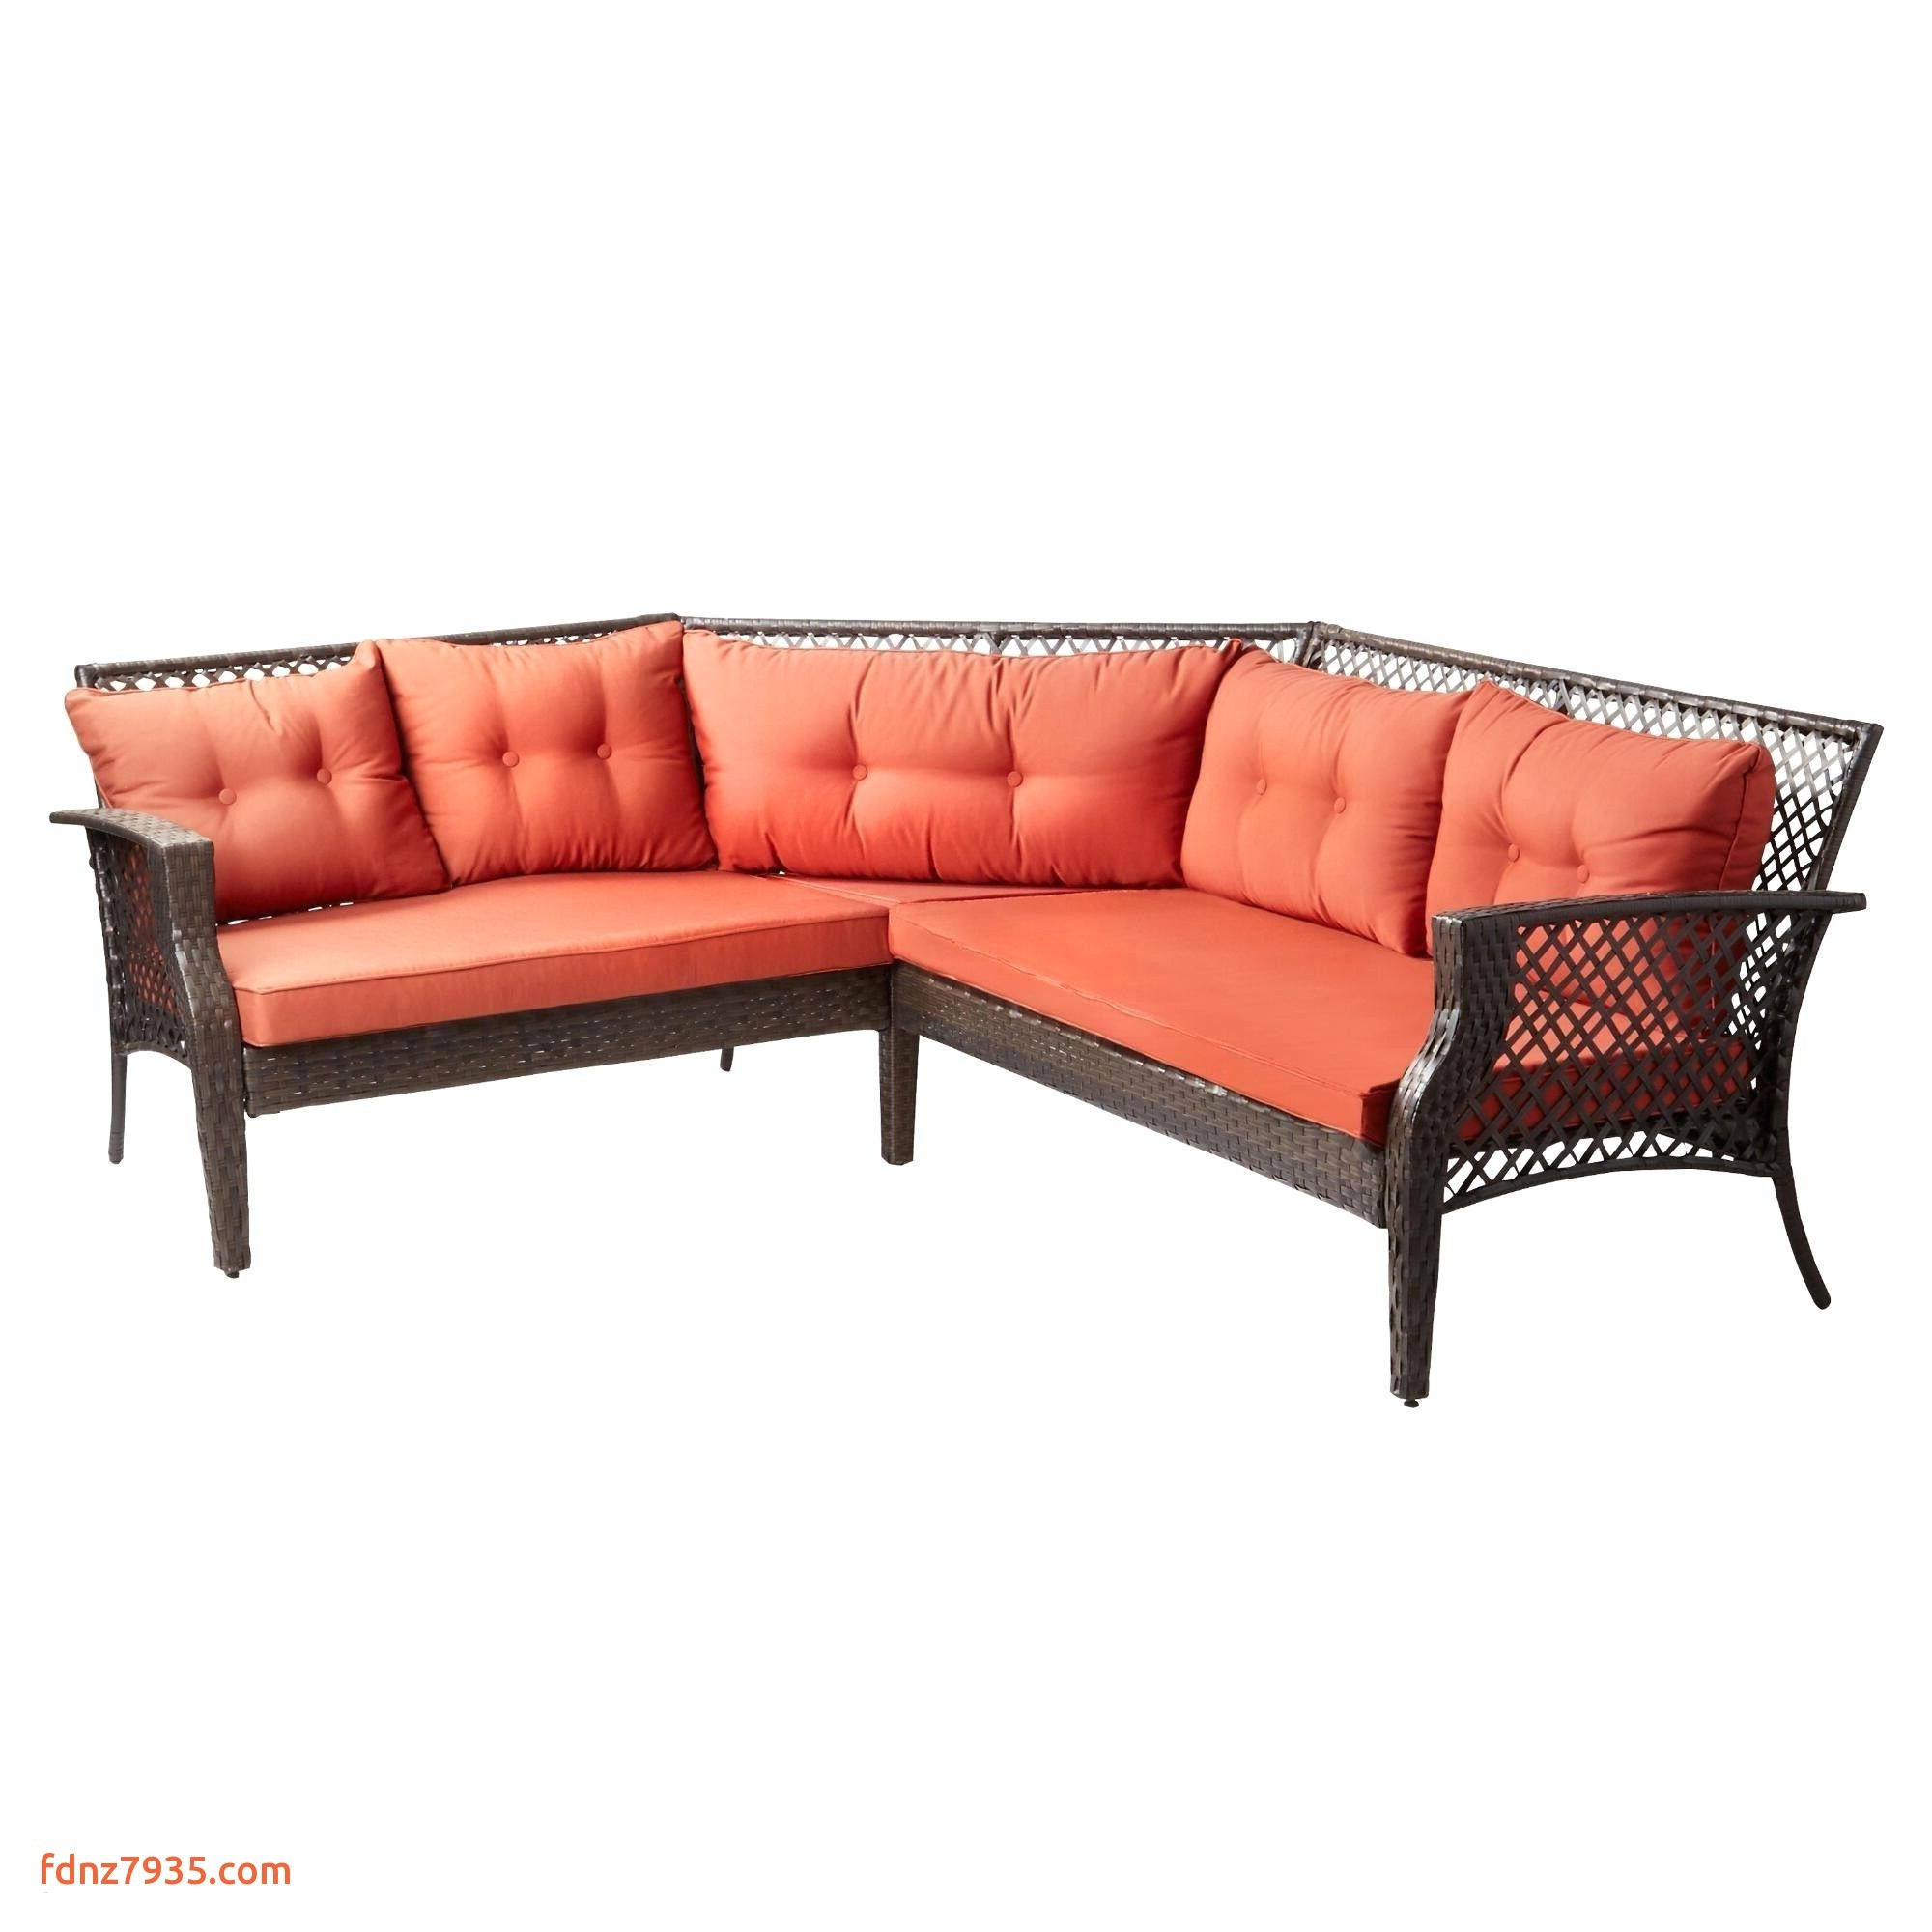 costco employee fresh patio furniture 0d tags amazing patio furniture fabulous lovely